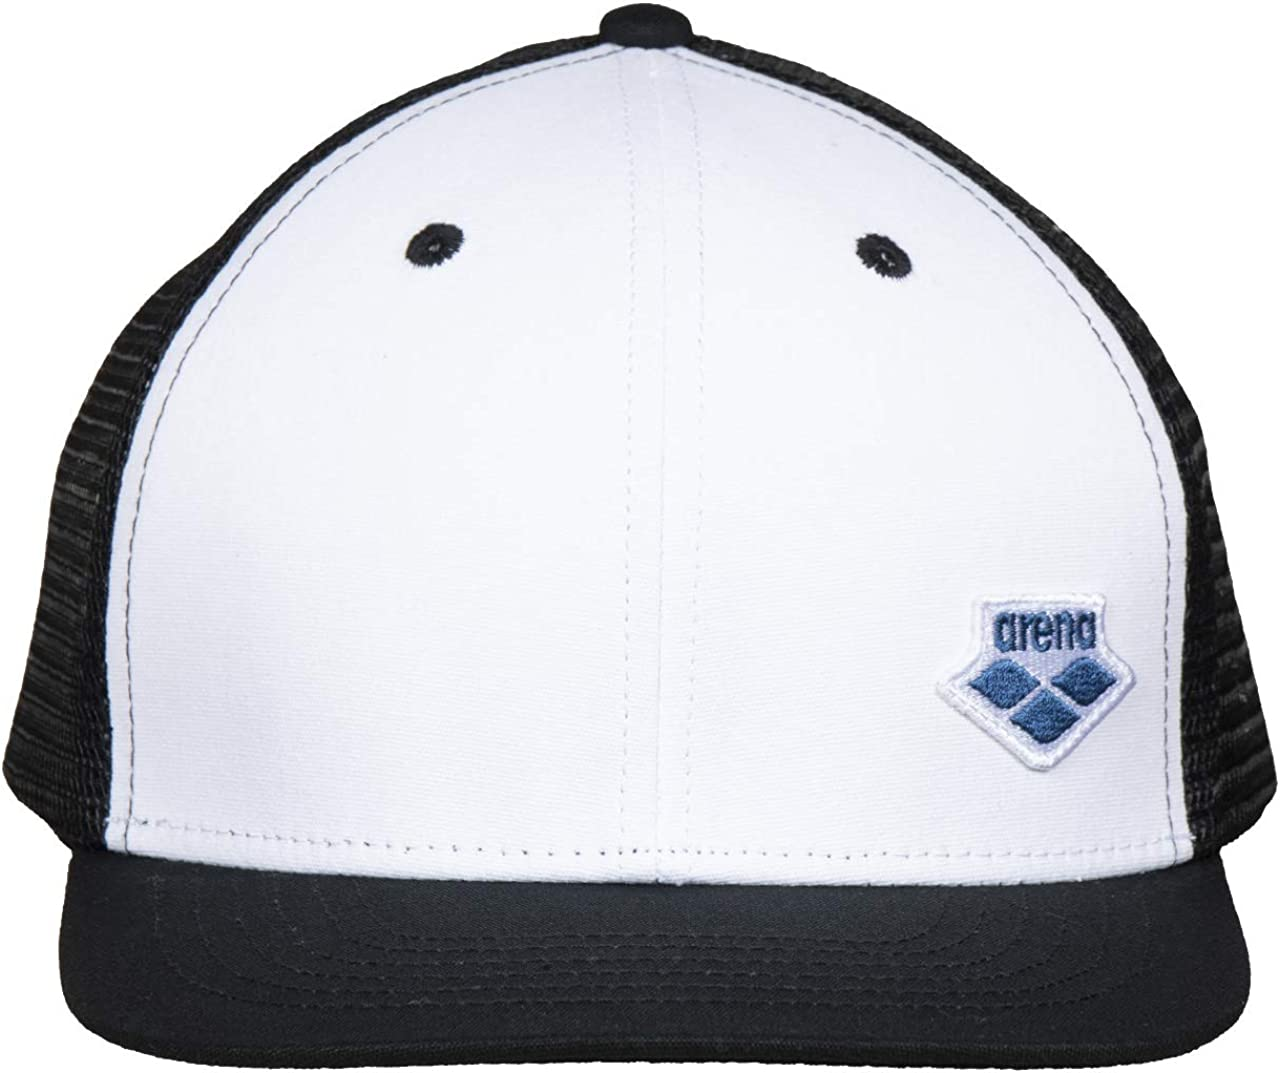 Arena Icons Cap Max 73% OFF Snap White-Black Baseball Back Hat Mail order cheap